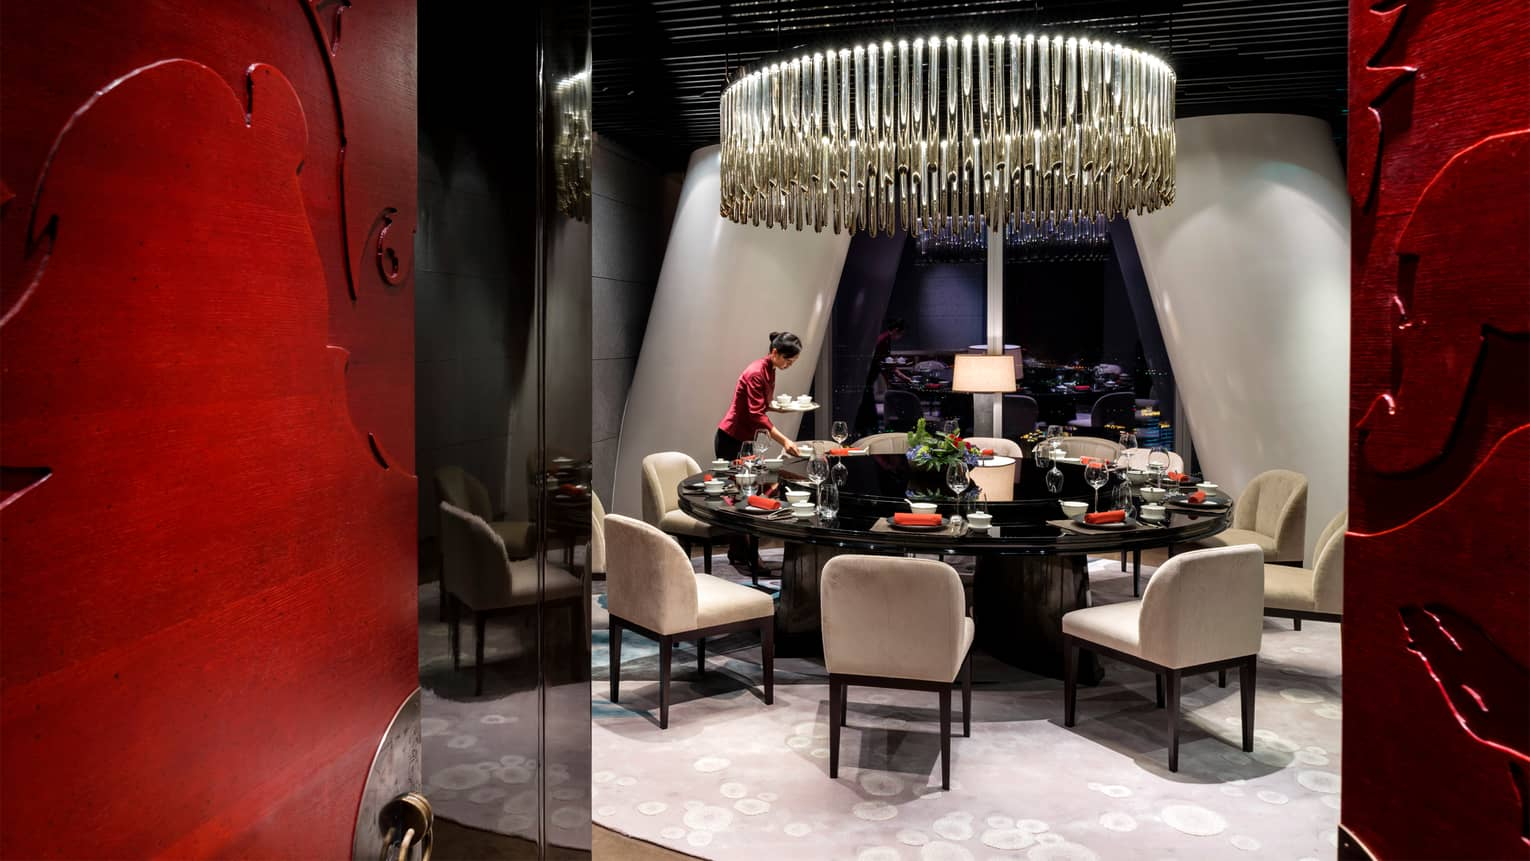 Yu Yue Heen server in red shirt sets round formal private dining table under large chandelier